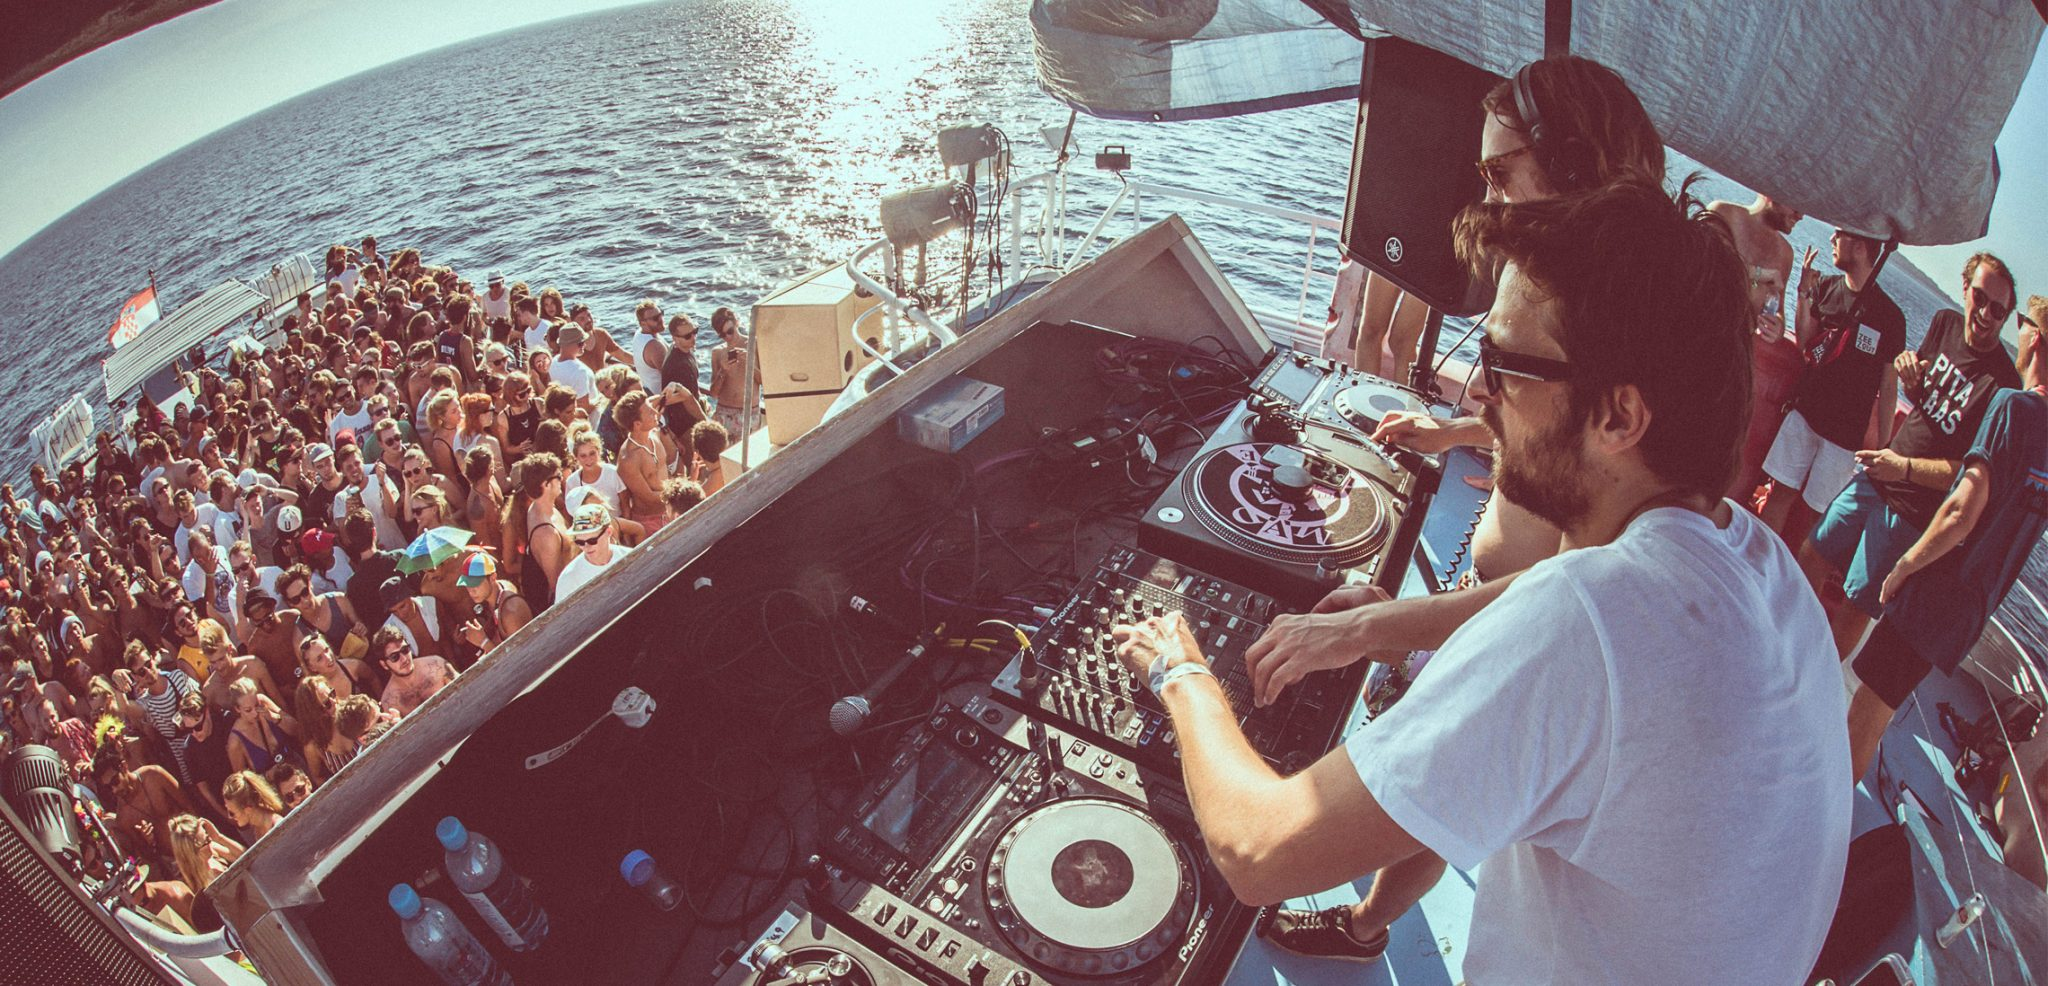 Five years of Dimensions boat parties announced